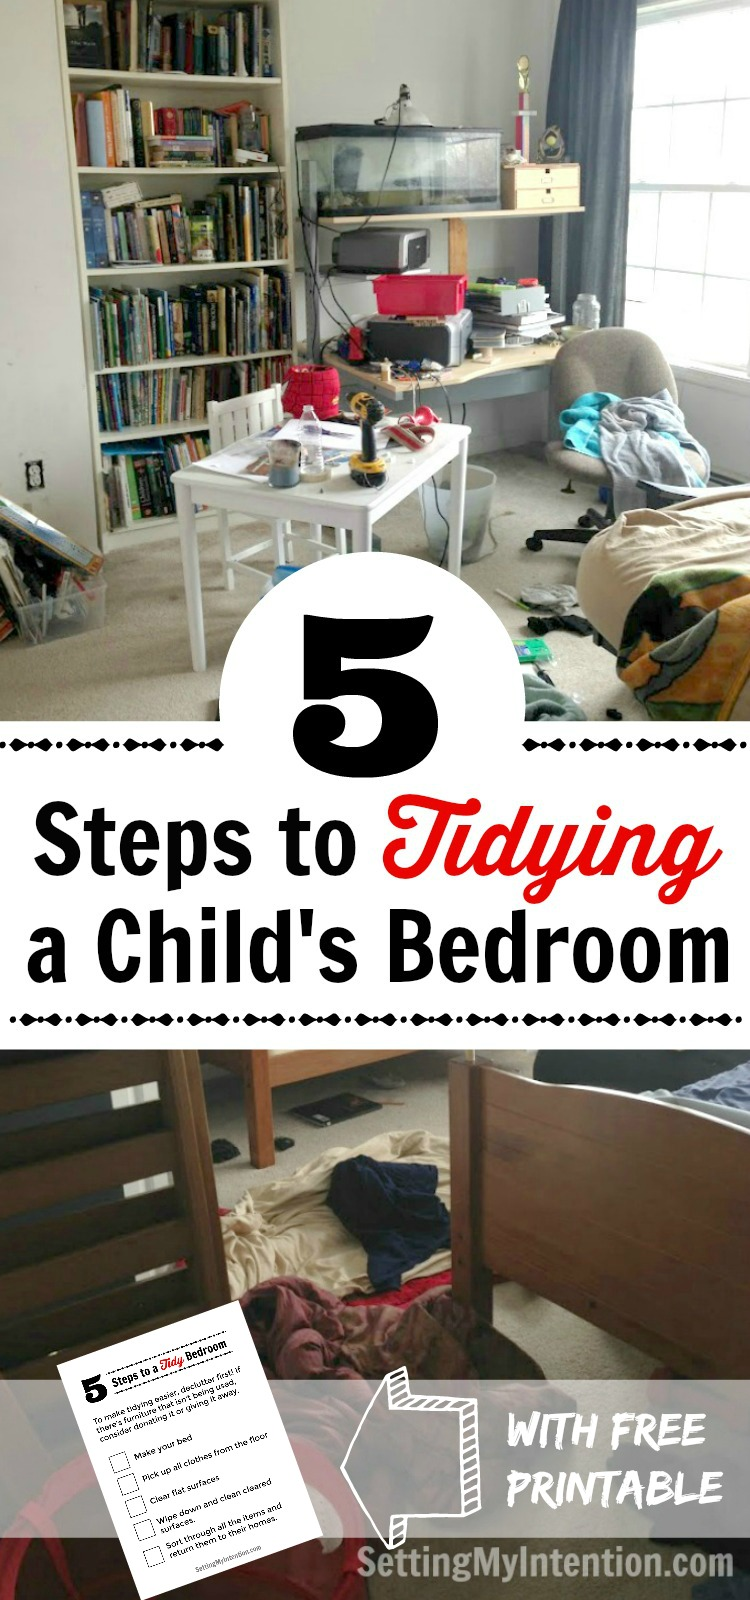 5 Steps to Tidying Childrens Bedrooms